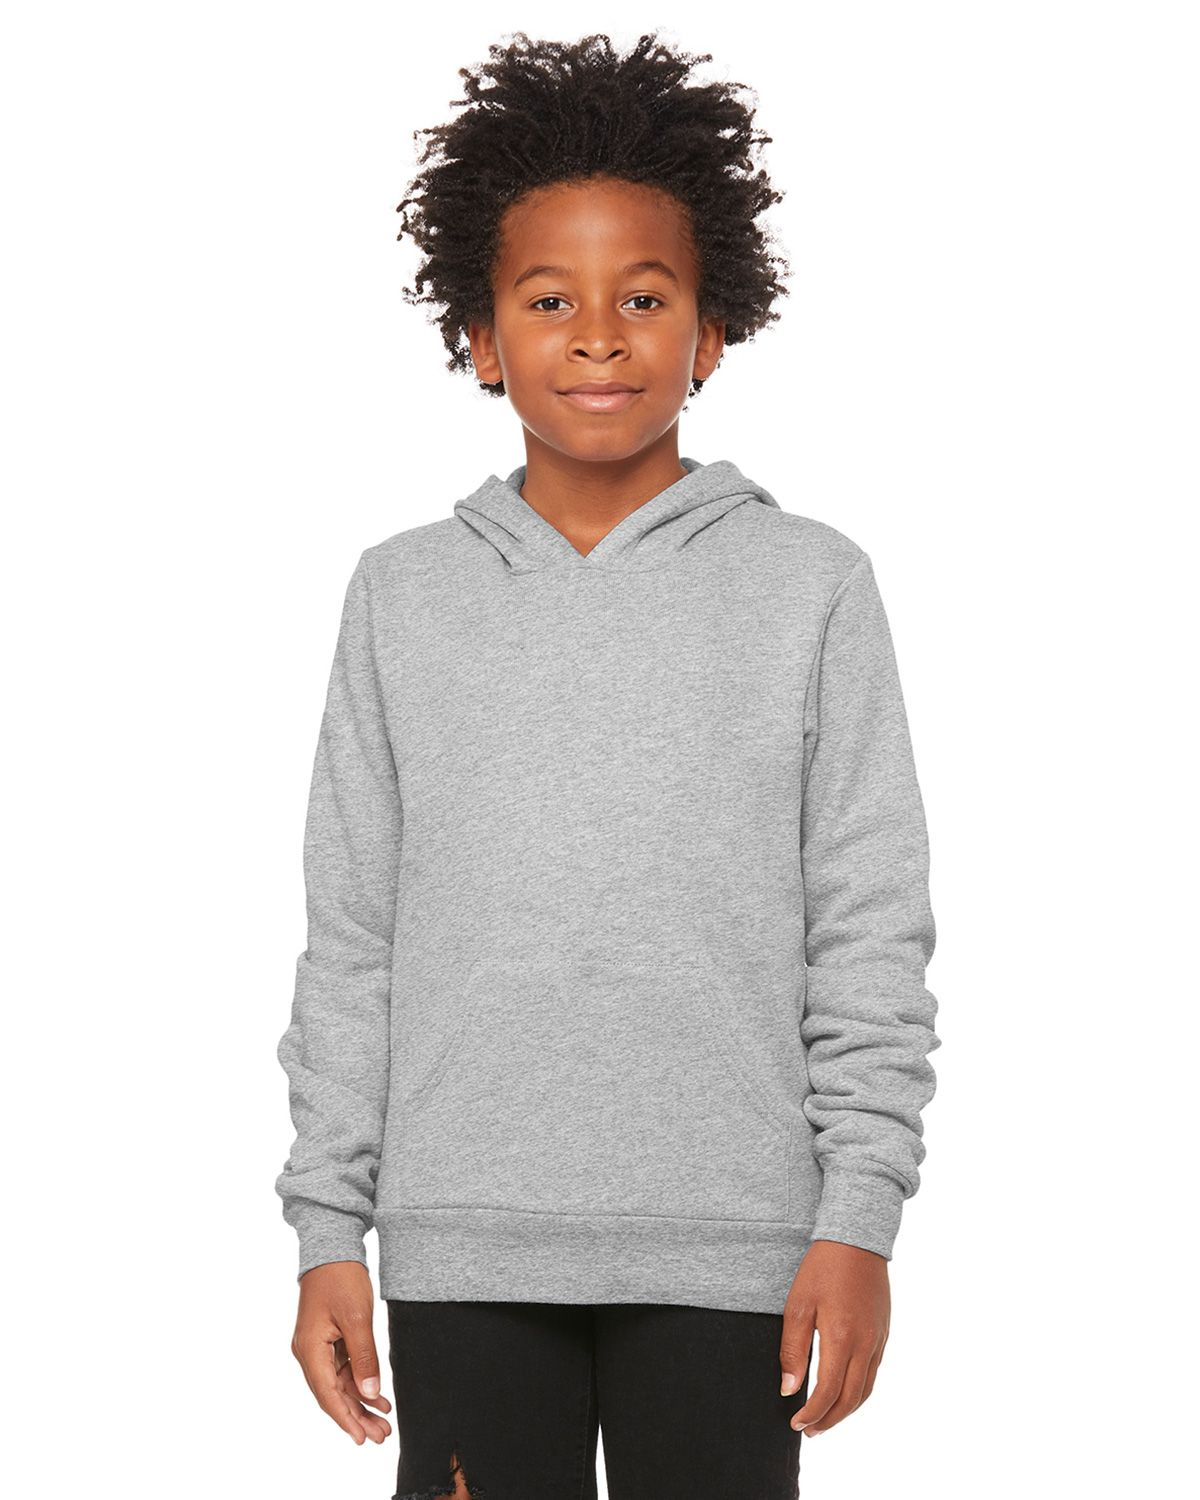 Bella + Canvas 3719Y Youth Sponge Fleece Pullover Hooded Sweatshirt - Athletic Heather - S from Bella + Canvas